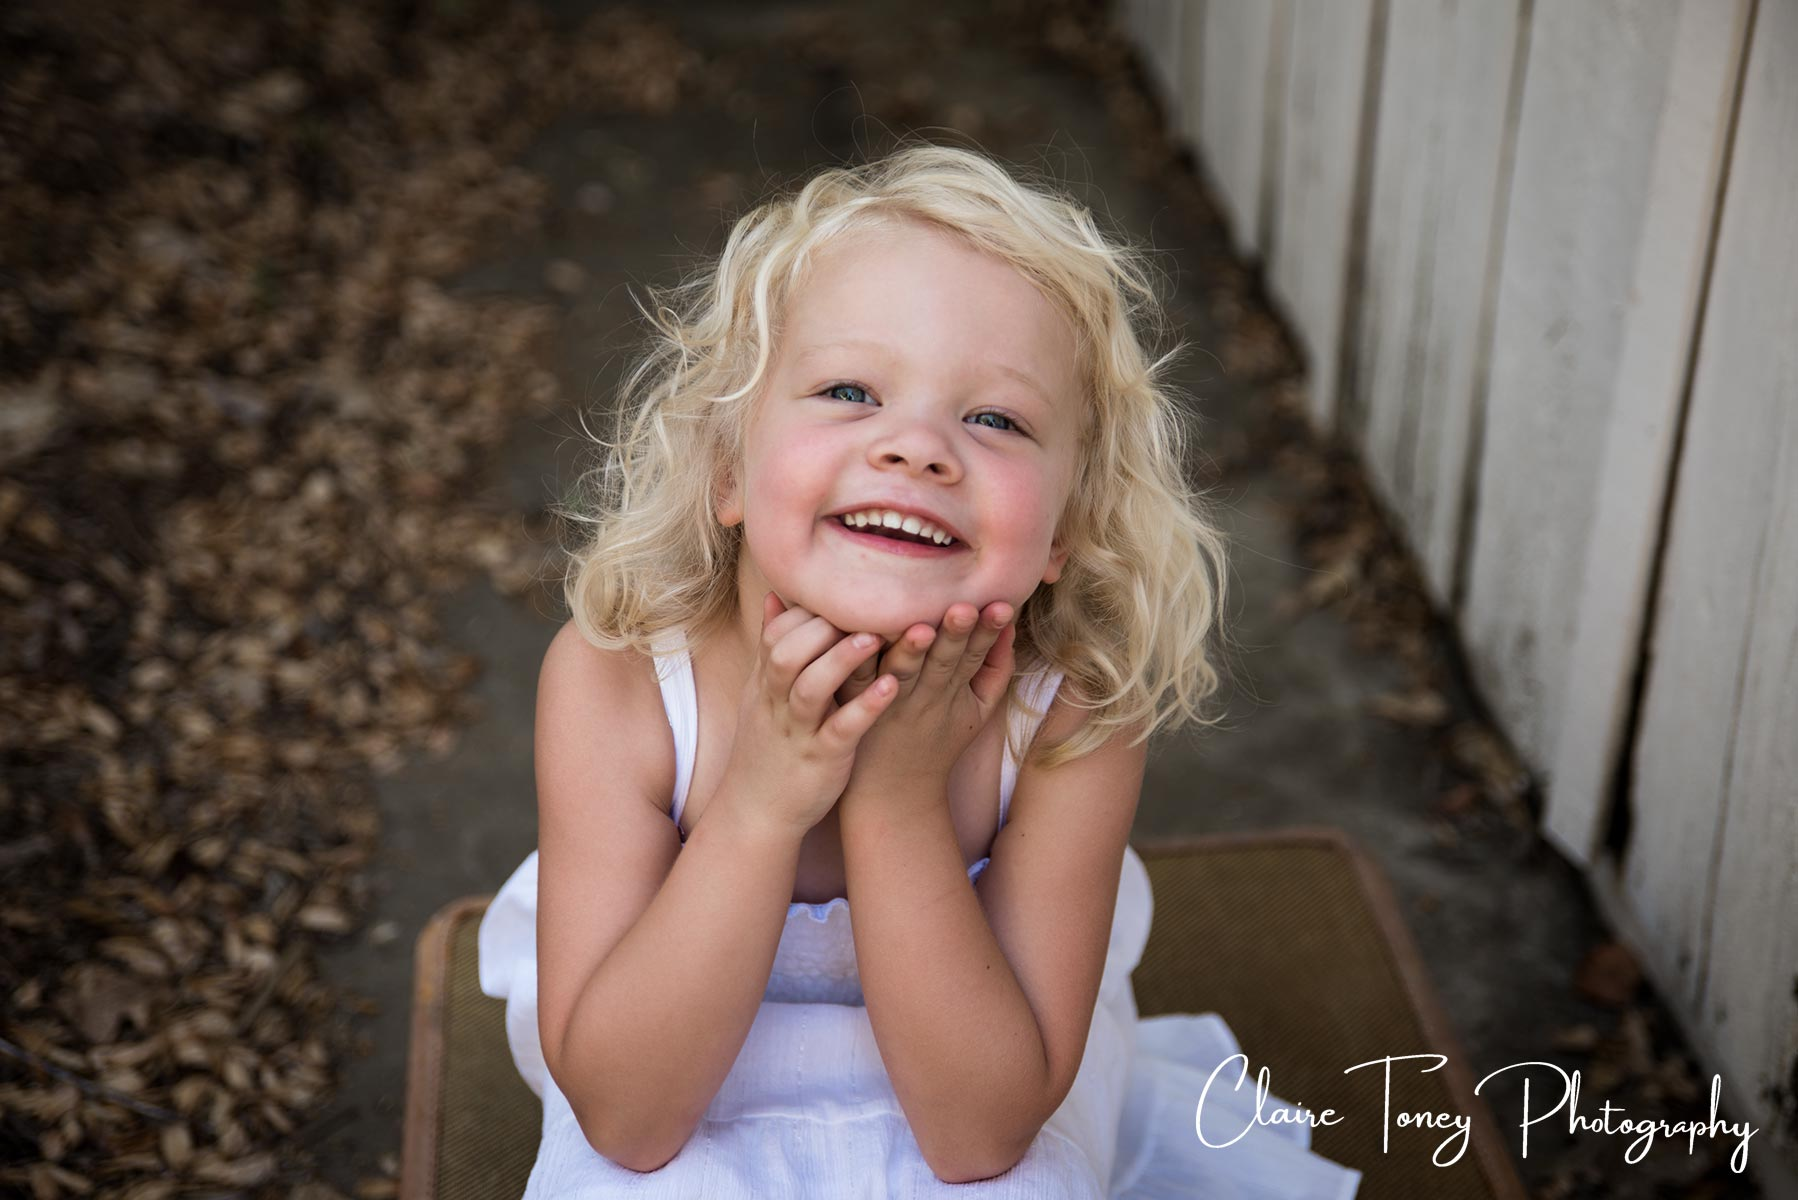 Little girl with her hands under her chin, smiling.Claire Toney Photography, Sacramento Photographer